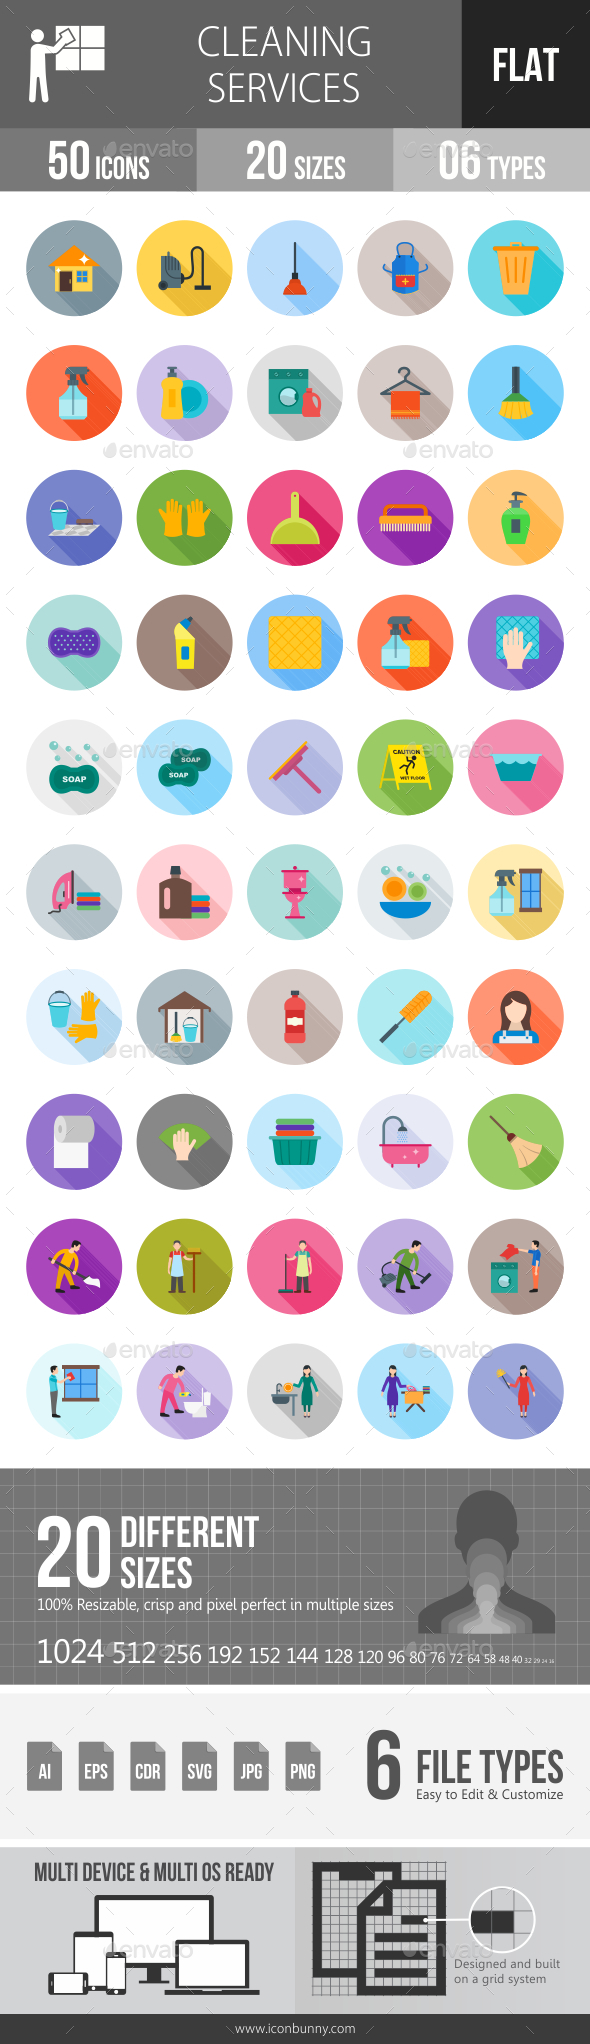 Cleaning Services Flat Shadowed Icons - Icons